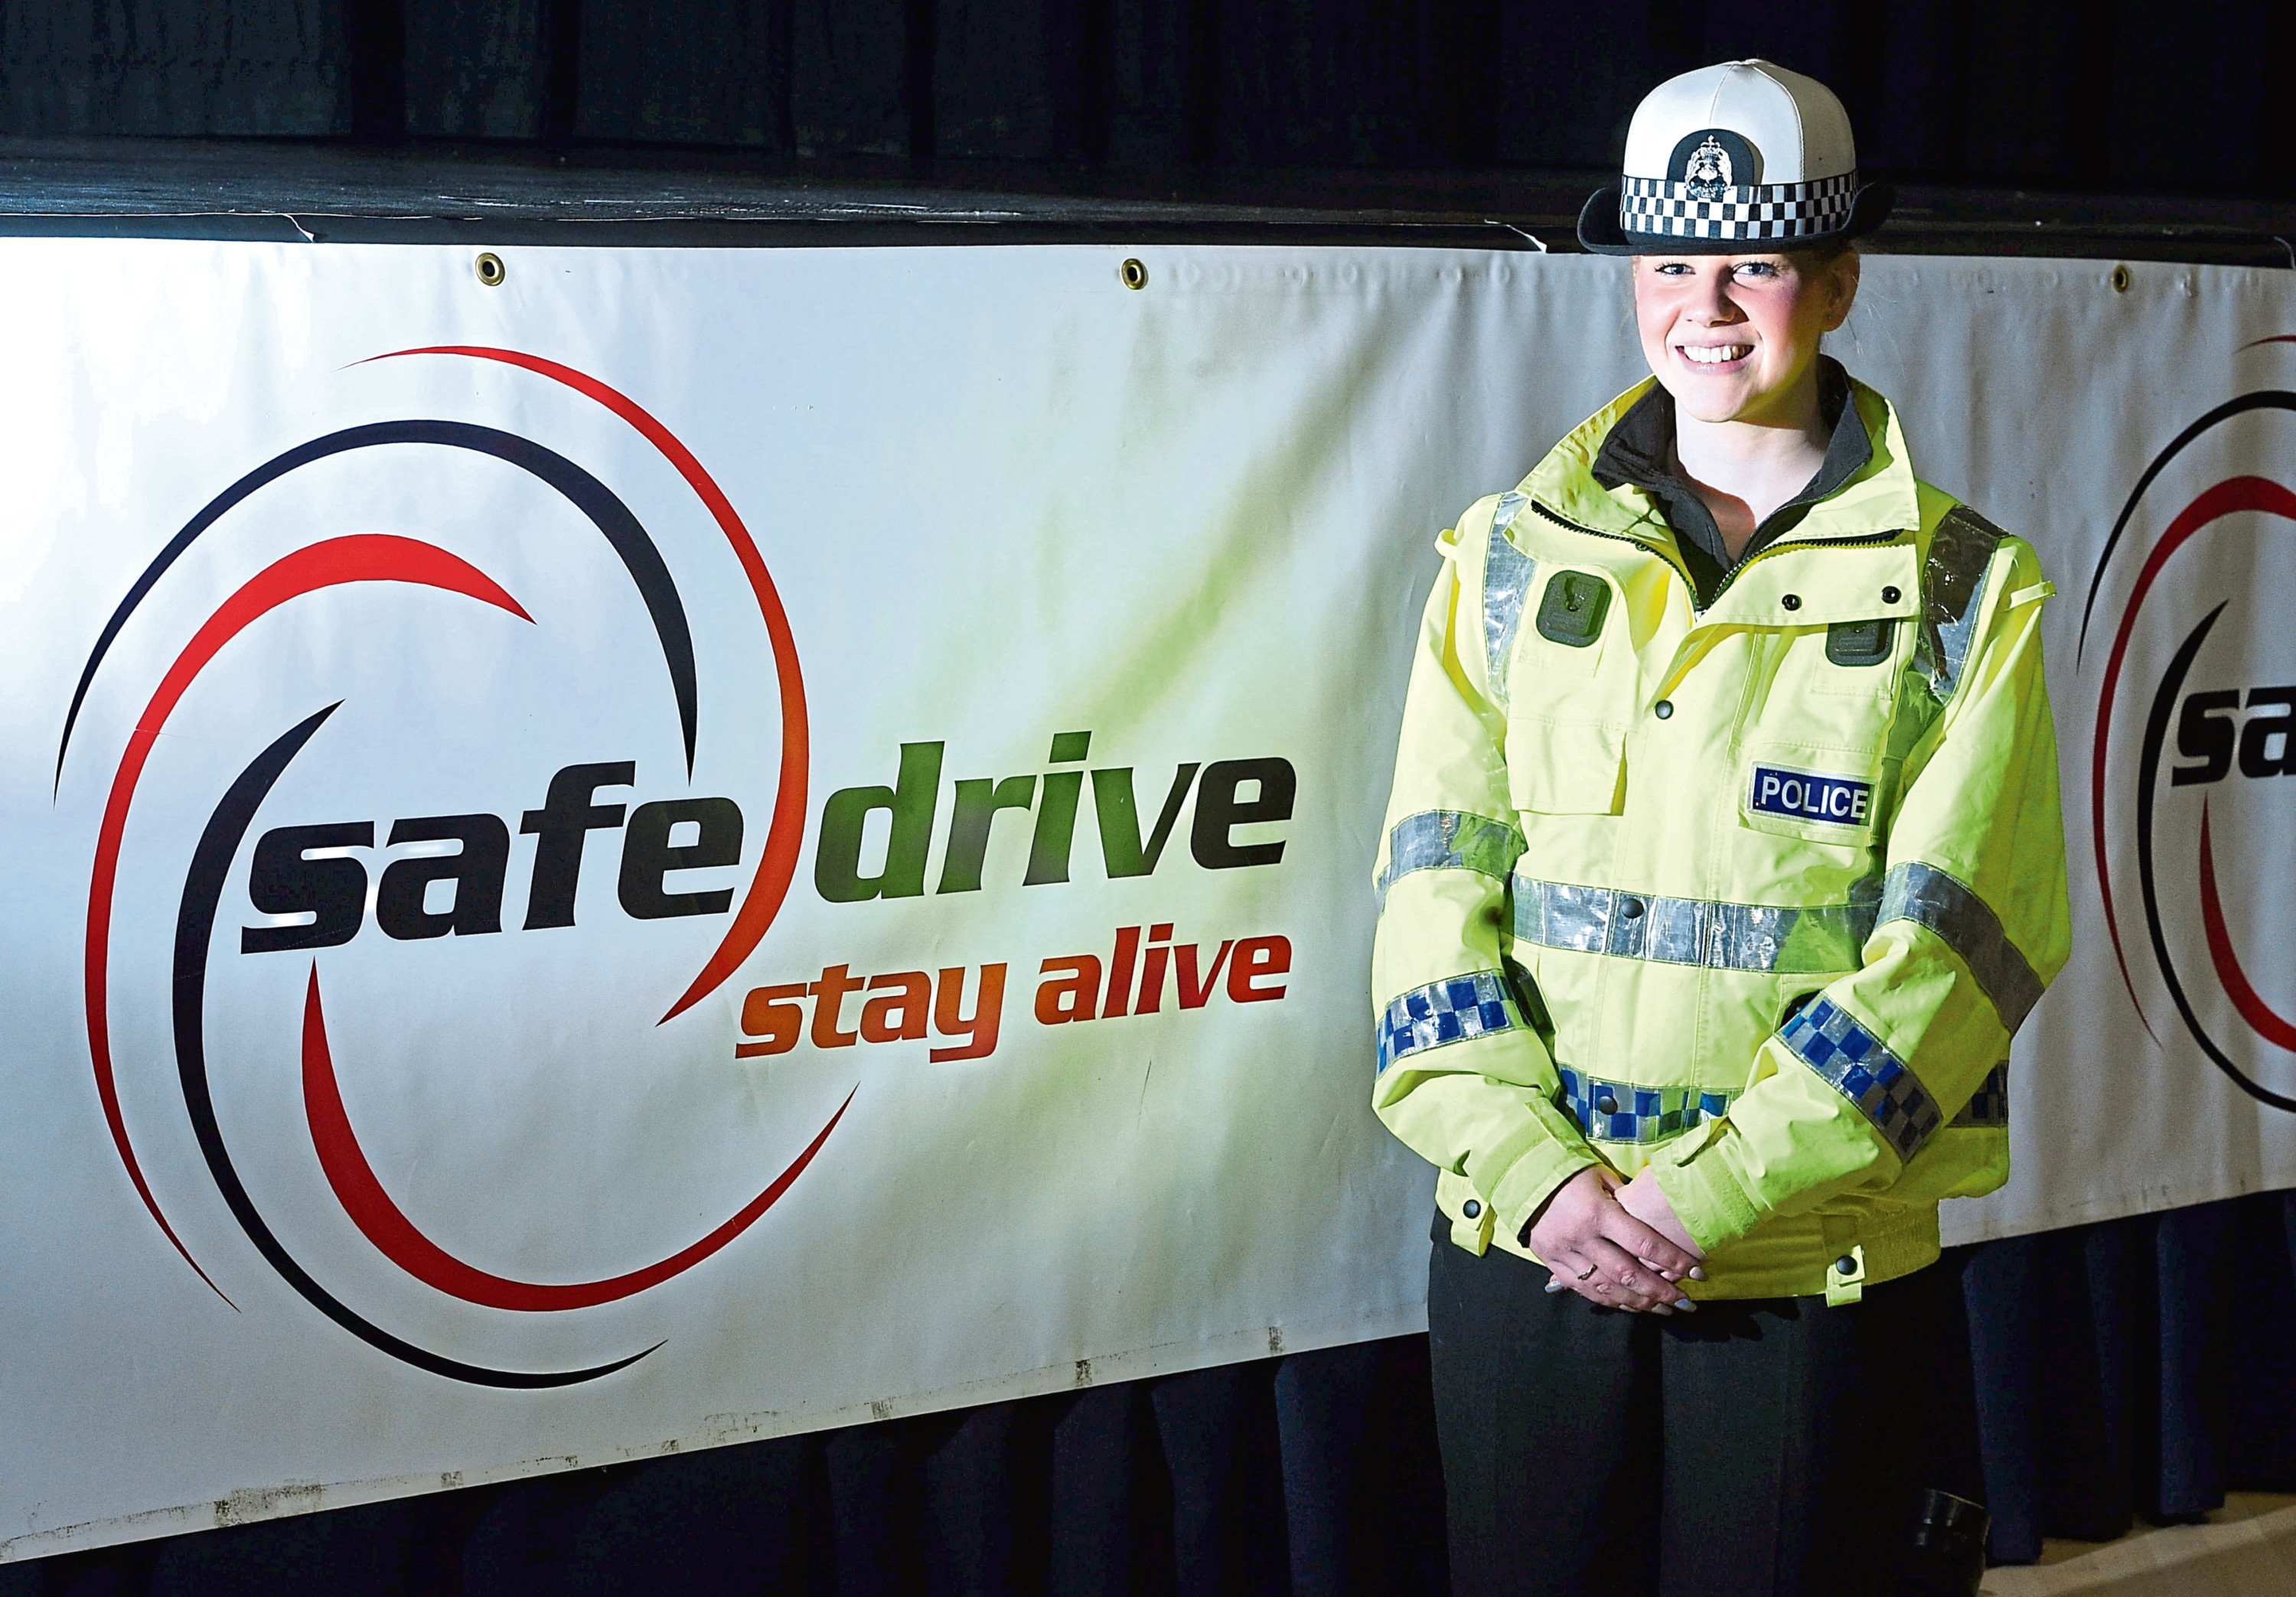 PC Lauren Tate at the Safe Drive Stay Alive event